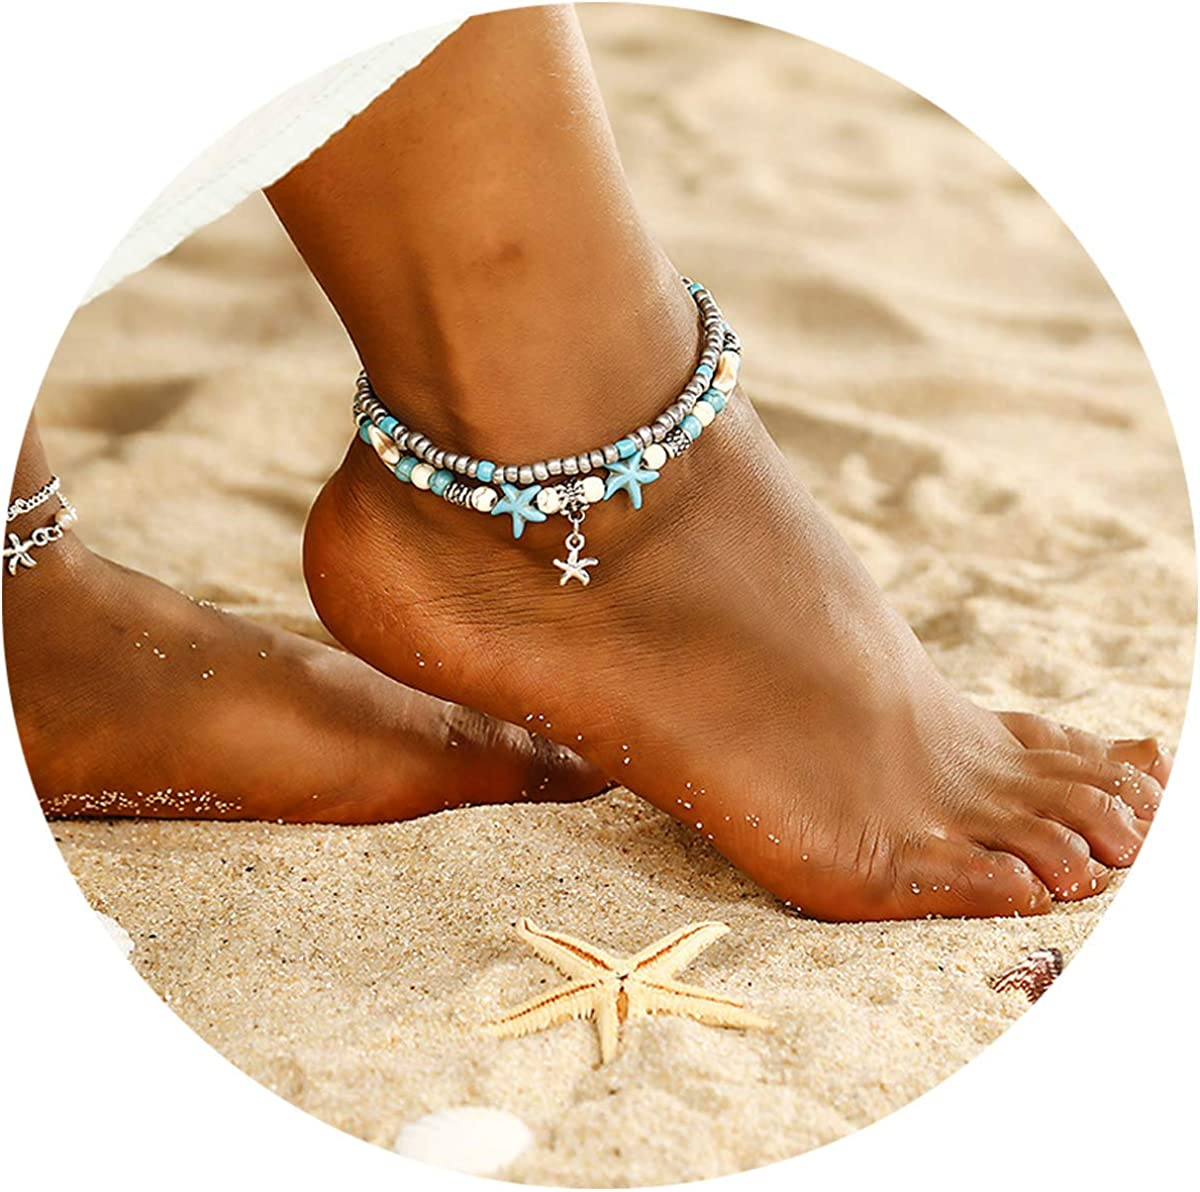 QIMOSHI 4 Style Anklets for Women Girls Beaded Turtle Elephant Charm Ankle Bracelets Multilayer Foot Jewelry Handmade